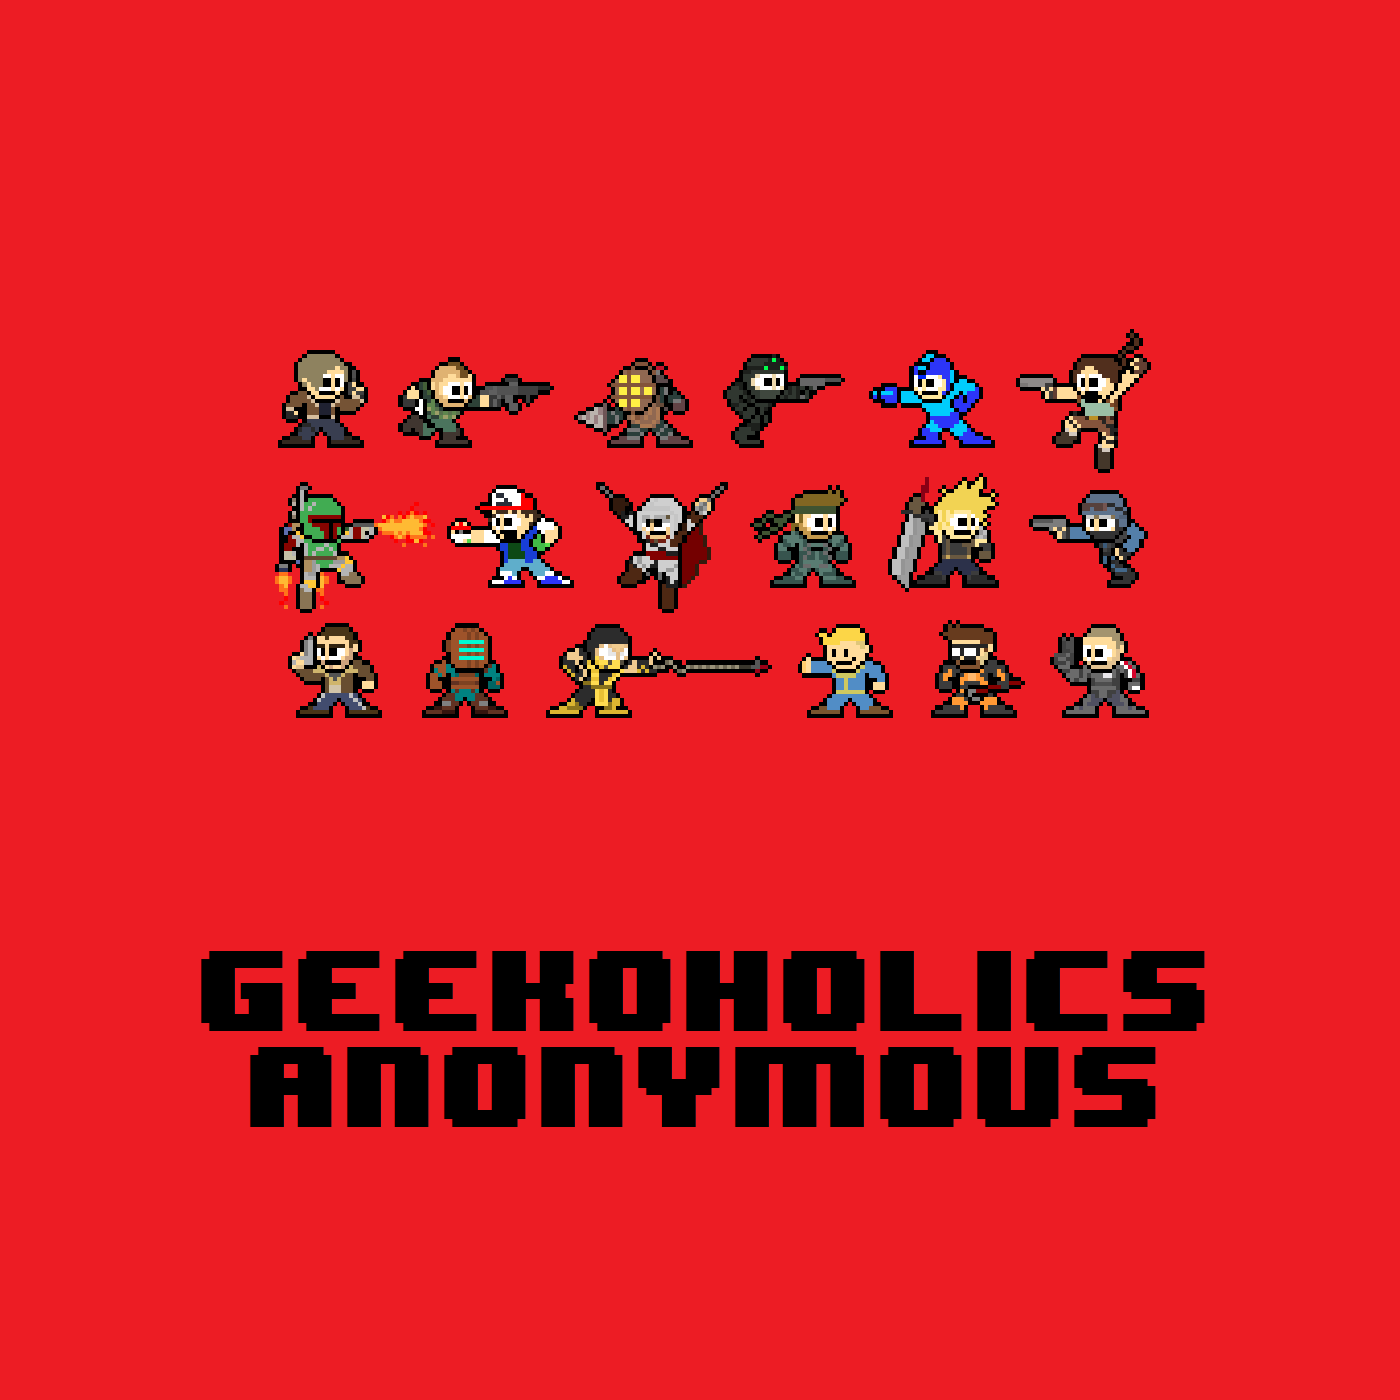 Resident Evil Village, Half-Life Alyx, Outriders and more - Geekoholics Anonymous Podcast 302 show art